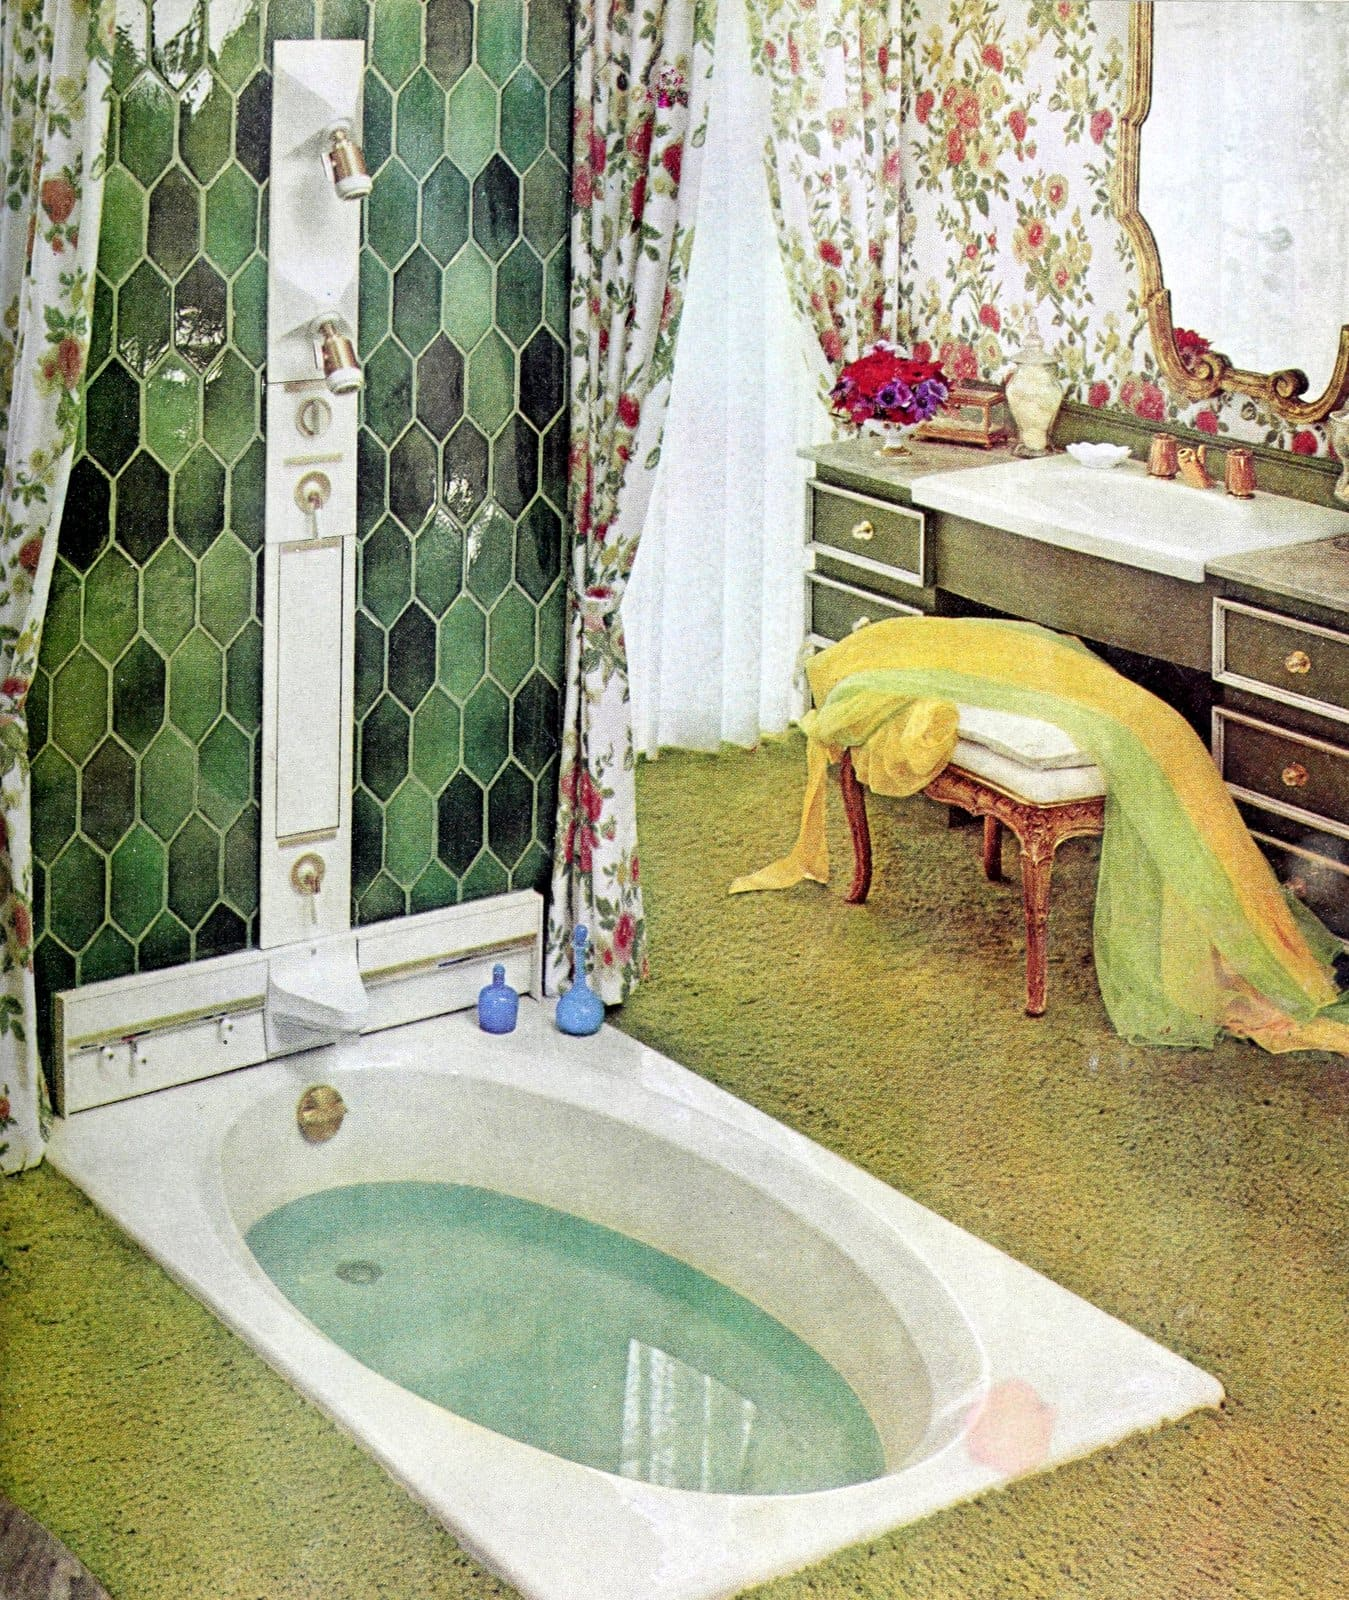 Late sixties bathroom design with tiled shower wall over bath (1969)